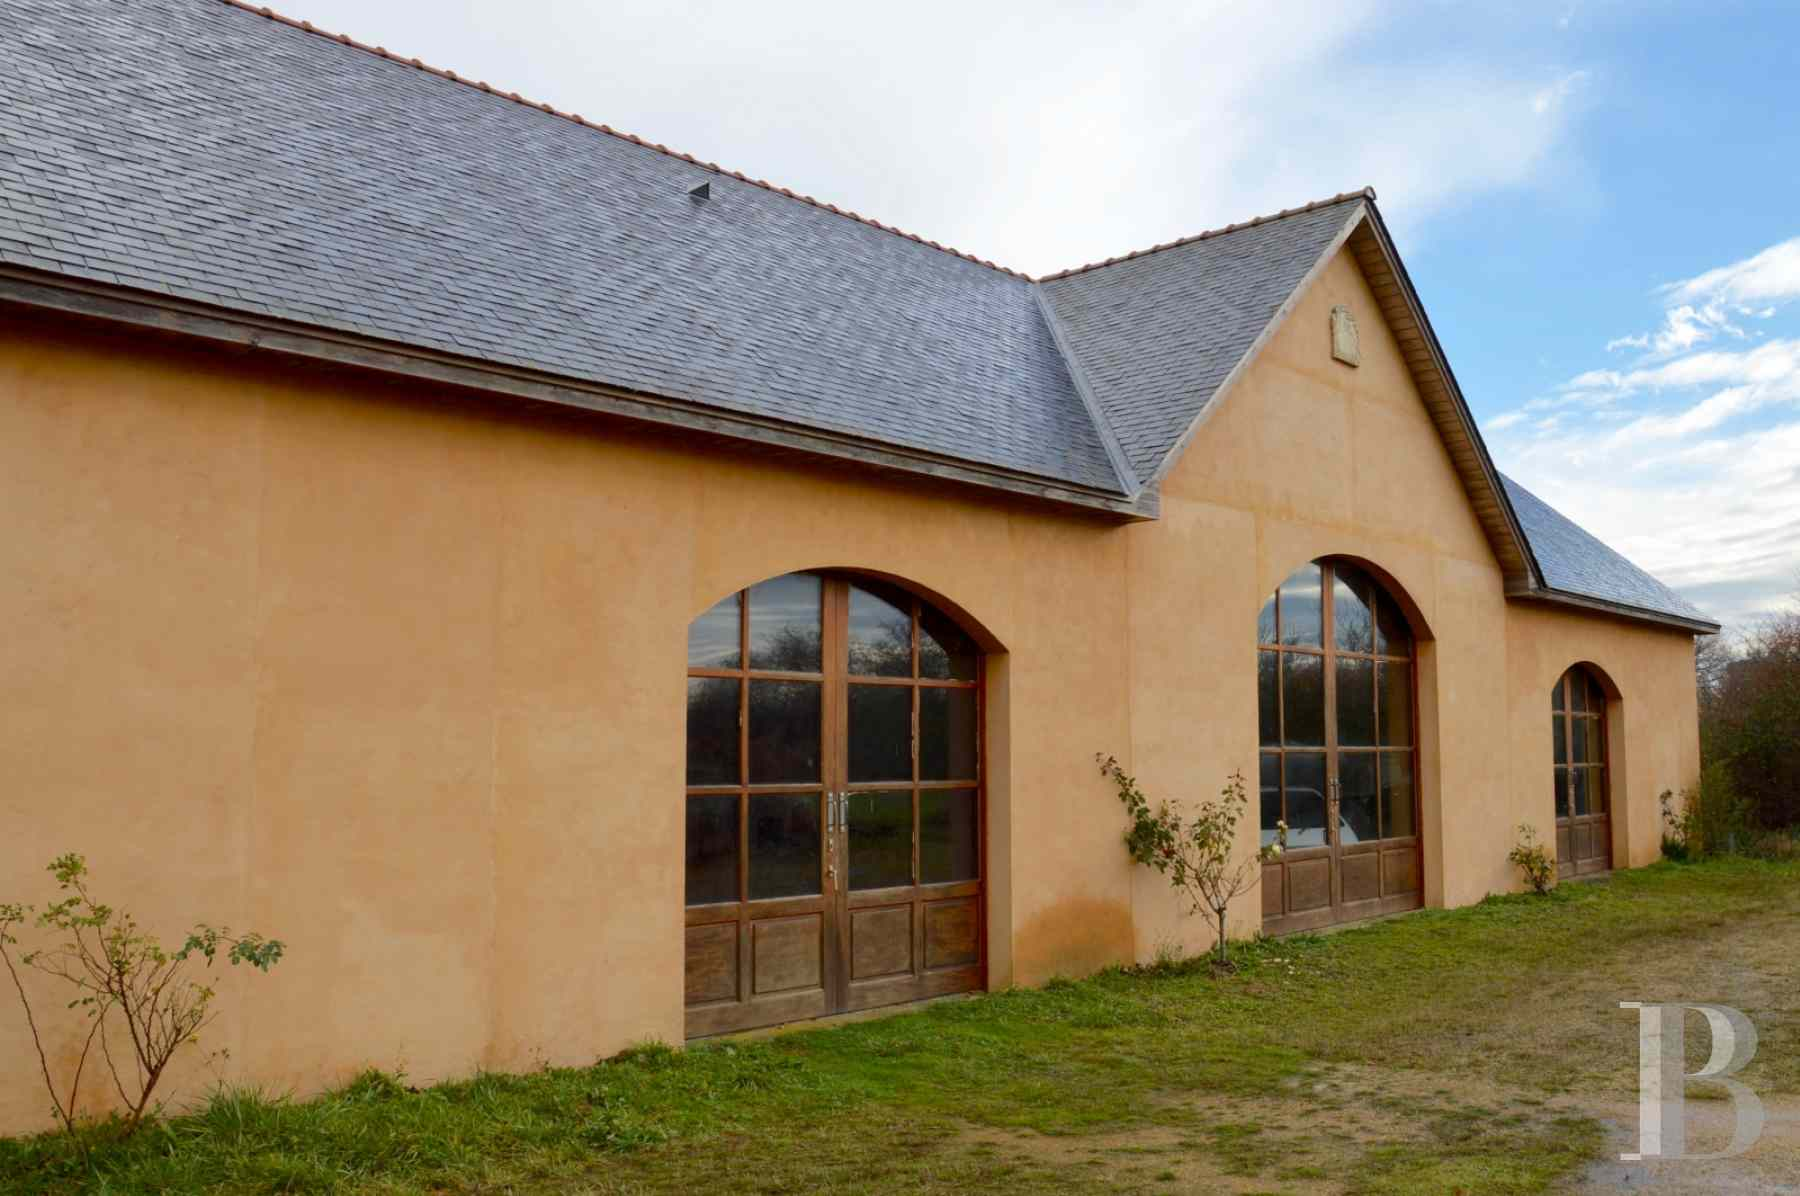 chateaux for sale France pays de loire manor house - 11 zoom